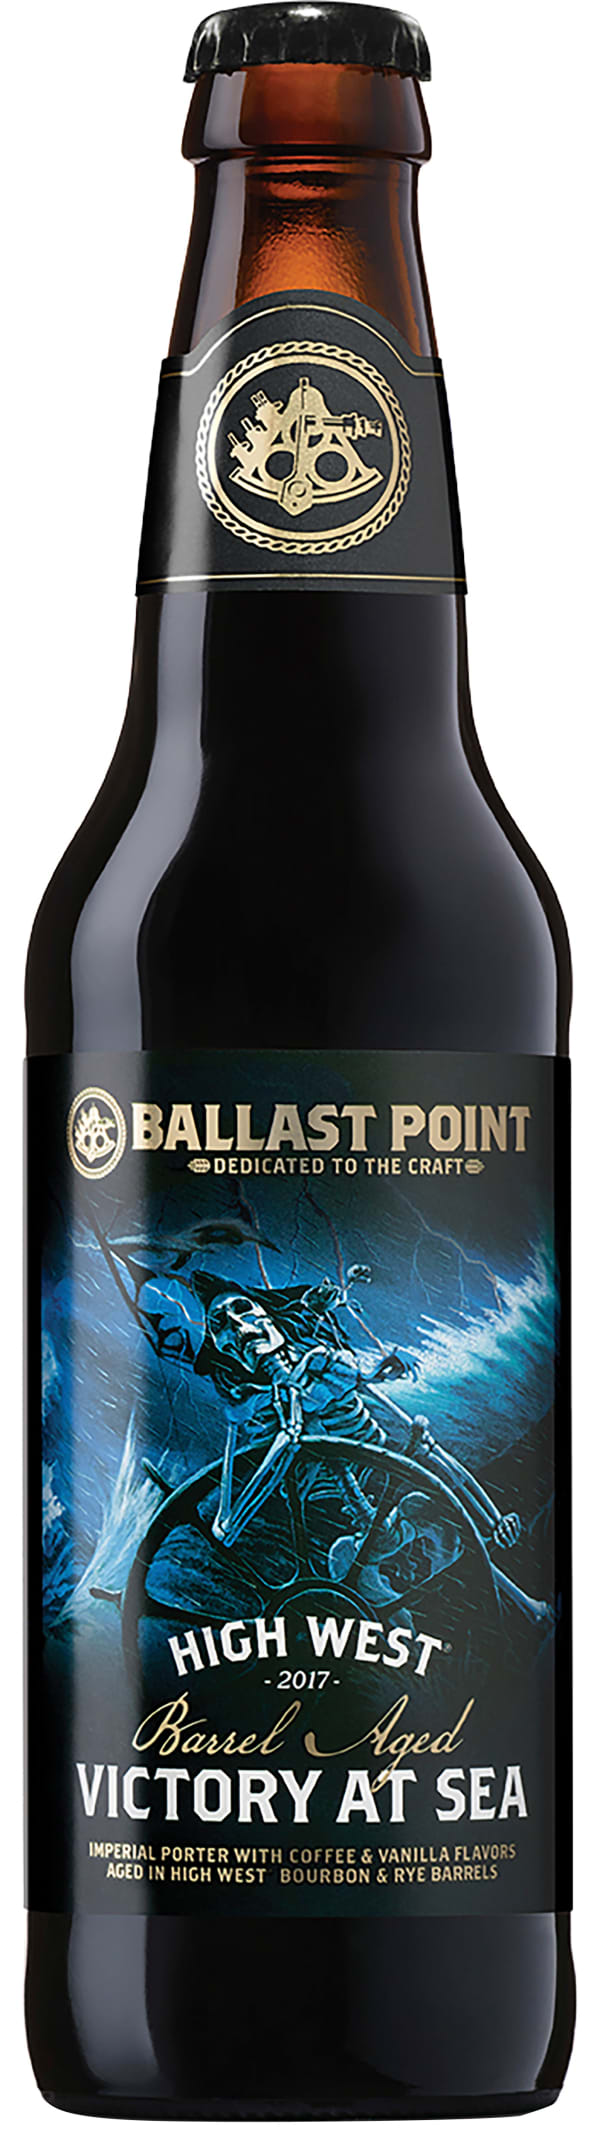 Ballast Point High West Barrel Aged Victory At Sea 2017 2017